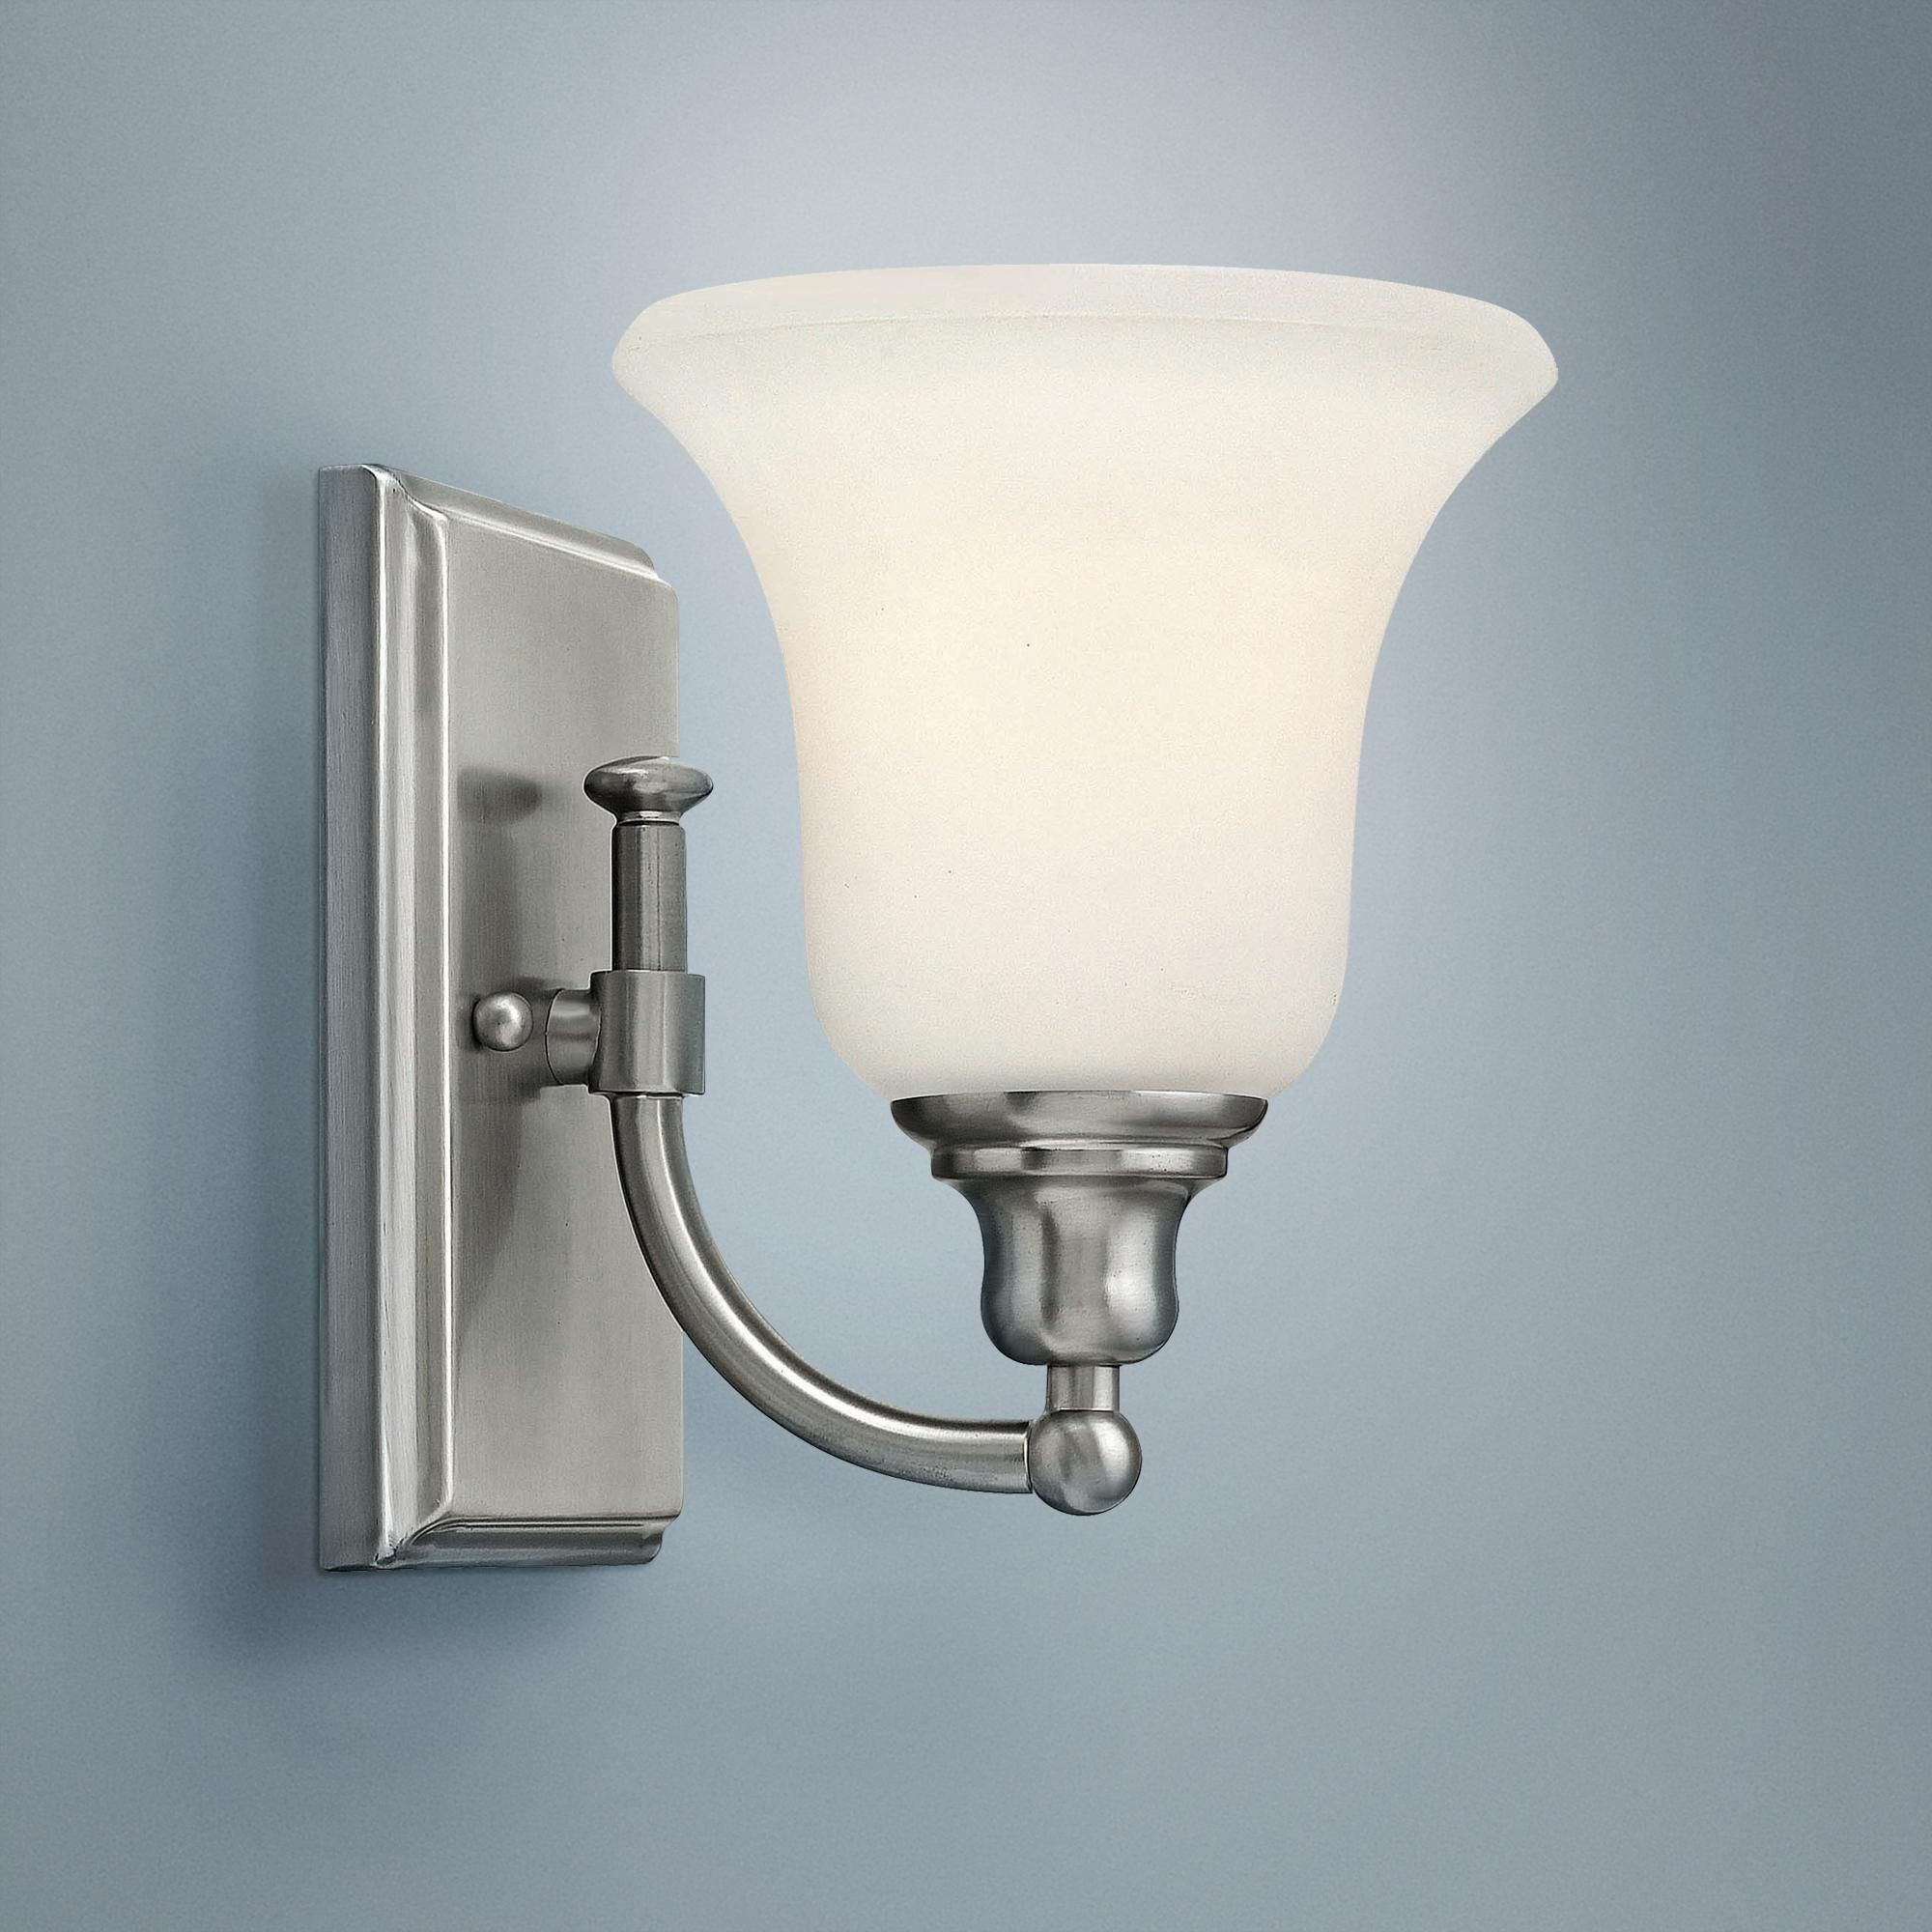 Photo of Hinkley Colette 8 and a quarter inch high brushed nickel wall light